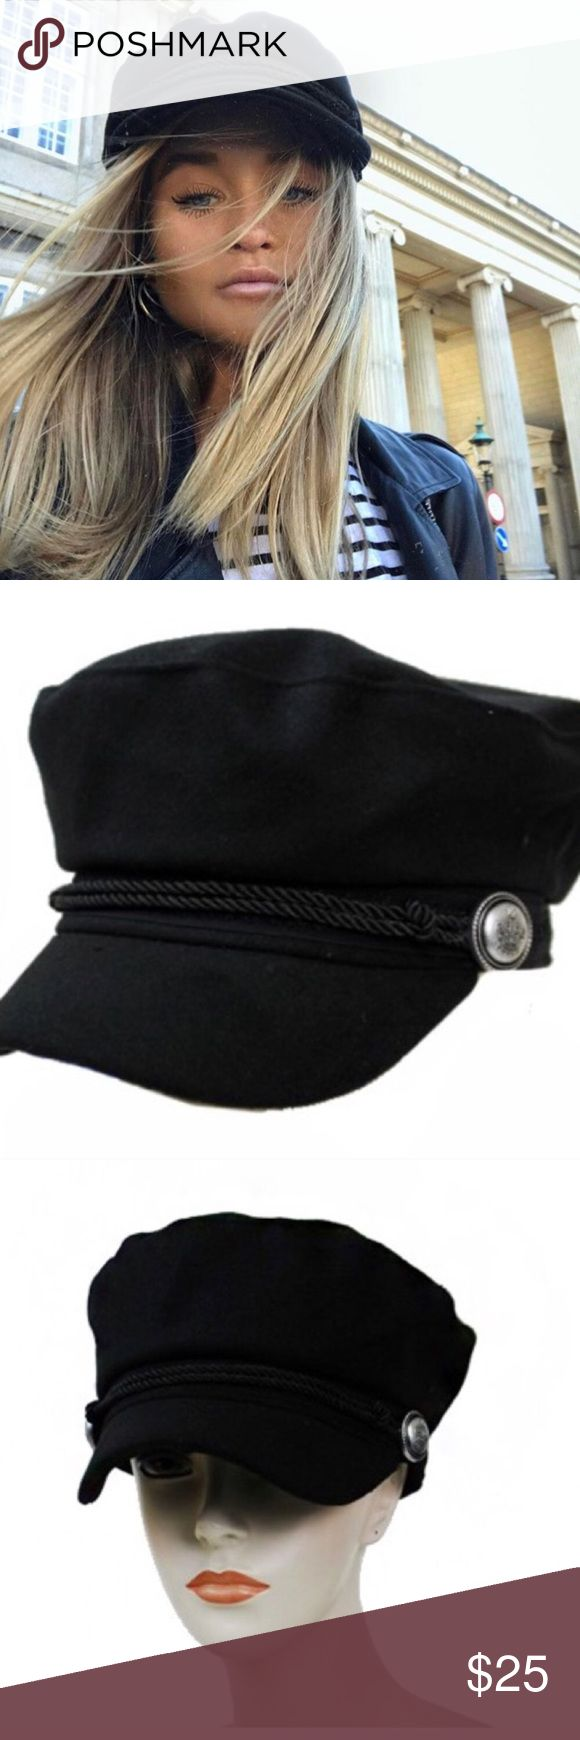 Black wool cabbie trendy newsboy braid detail hat - Brand new from our online store - No trades  - FIRM on price  - Onesize (OS) Brandy Melville Accessories Hats